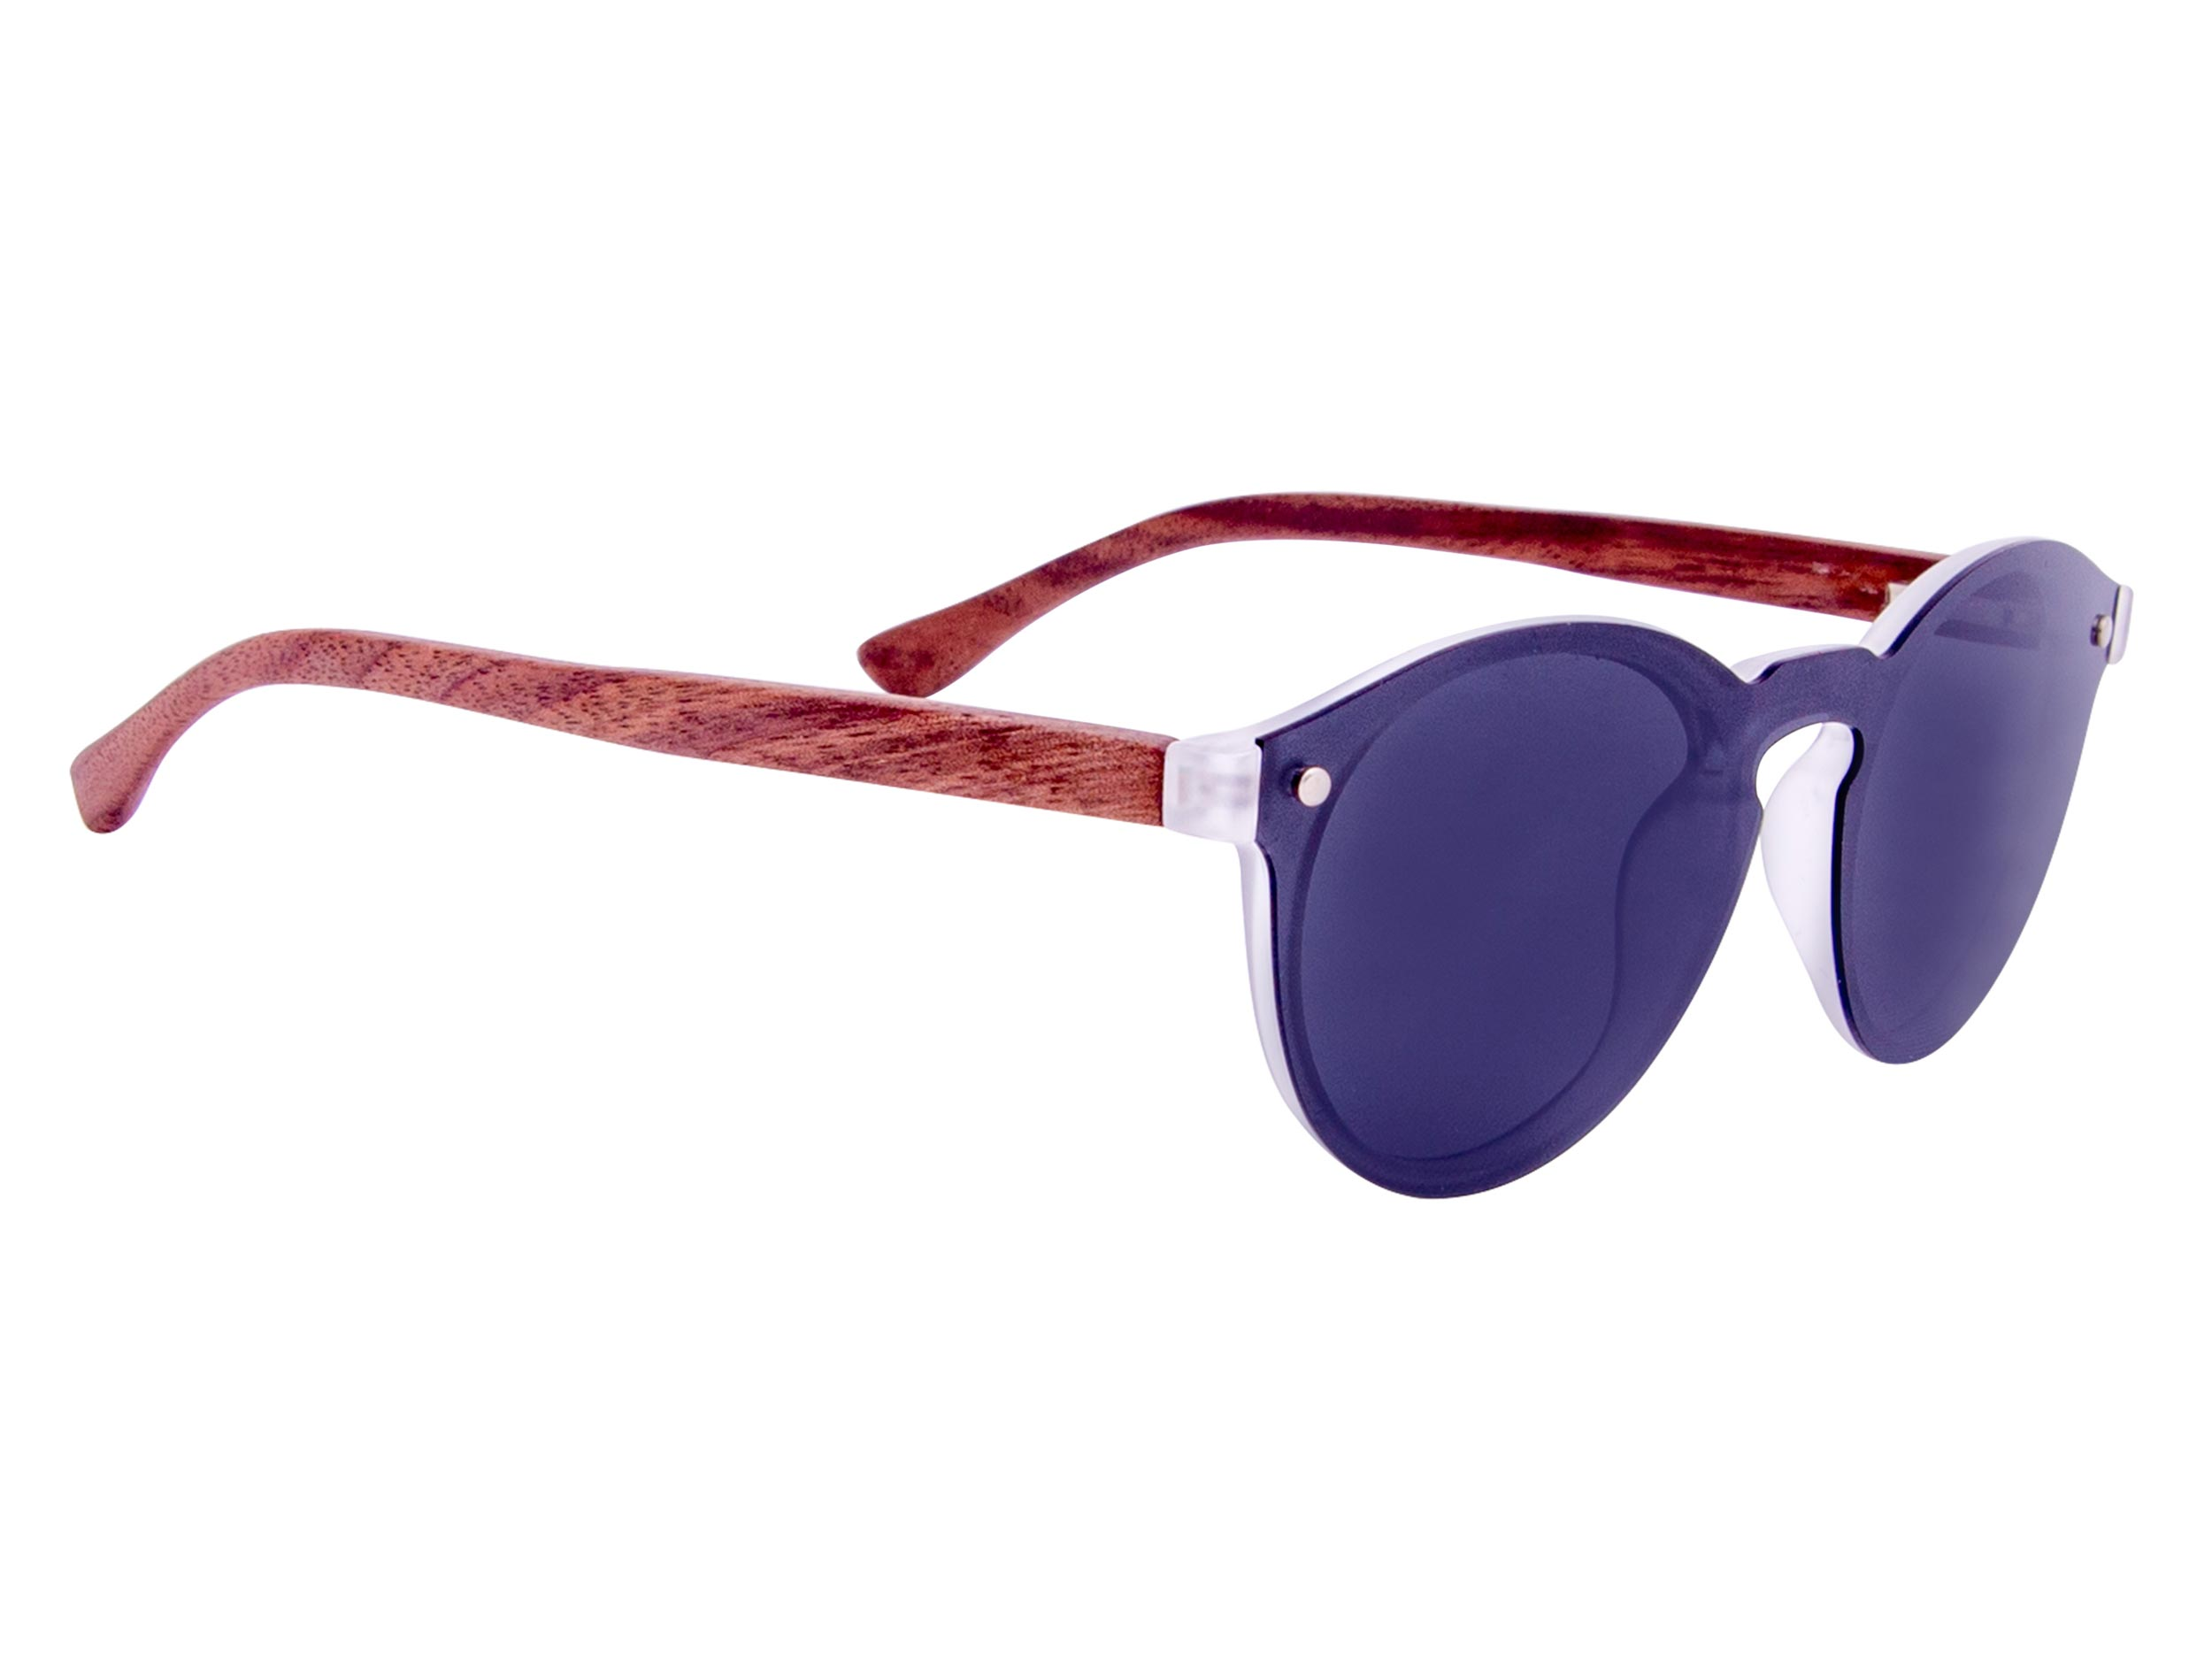 Round walnut wood sunglasses right